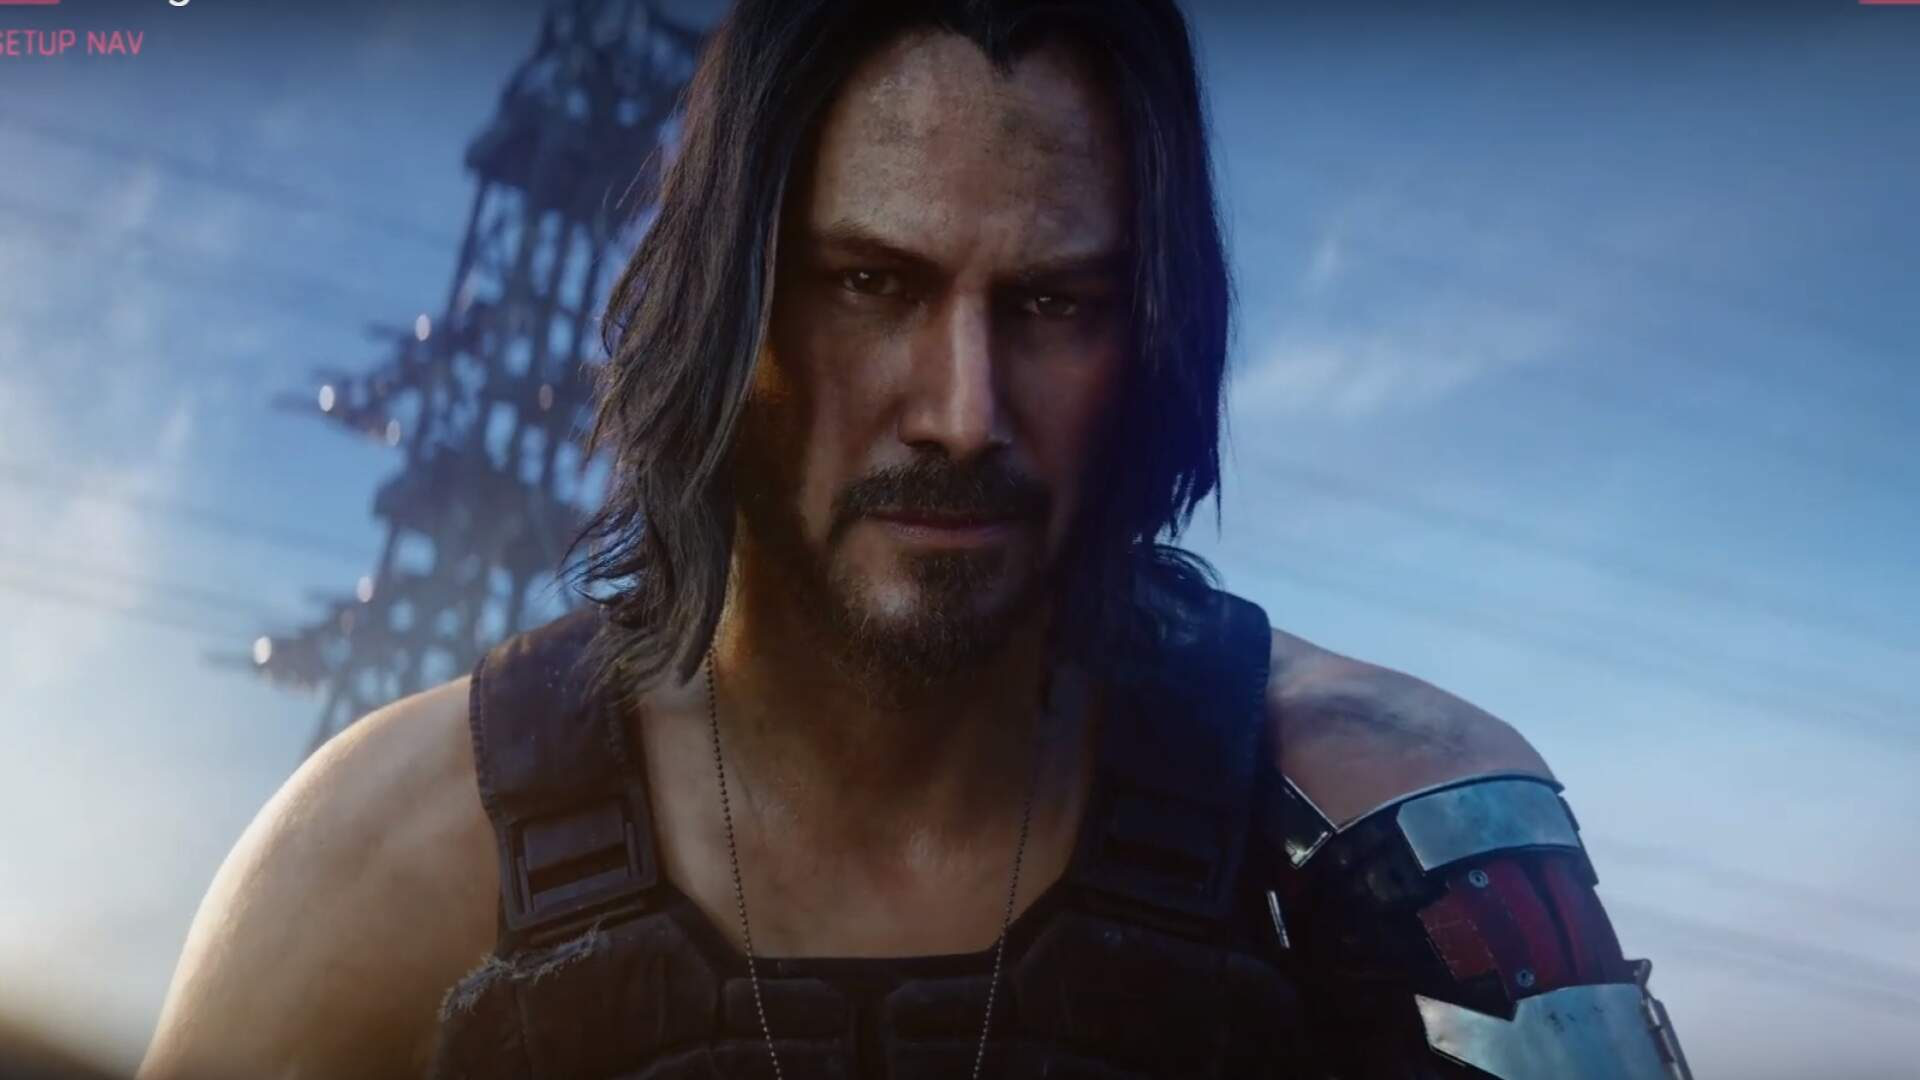 Cyberpunk 2077 Adds Keanu Reeves to Its Cast, Coming April 2020